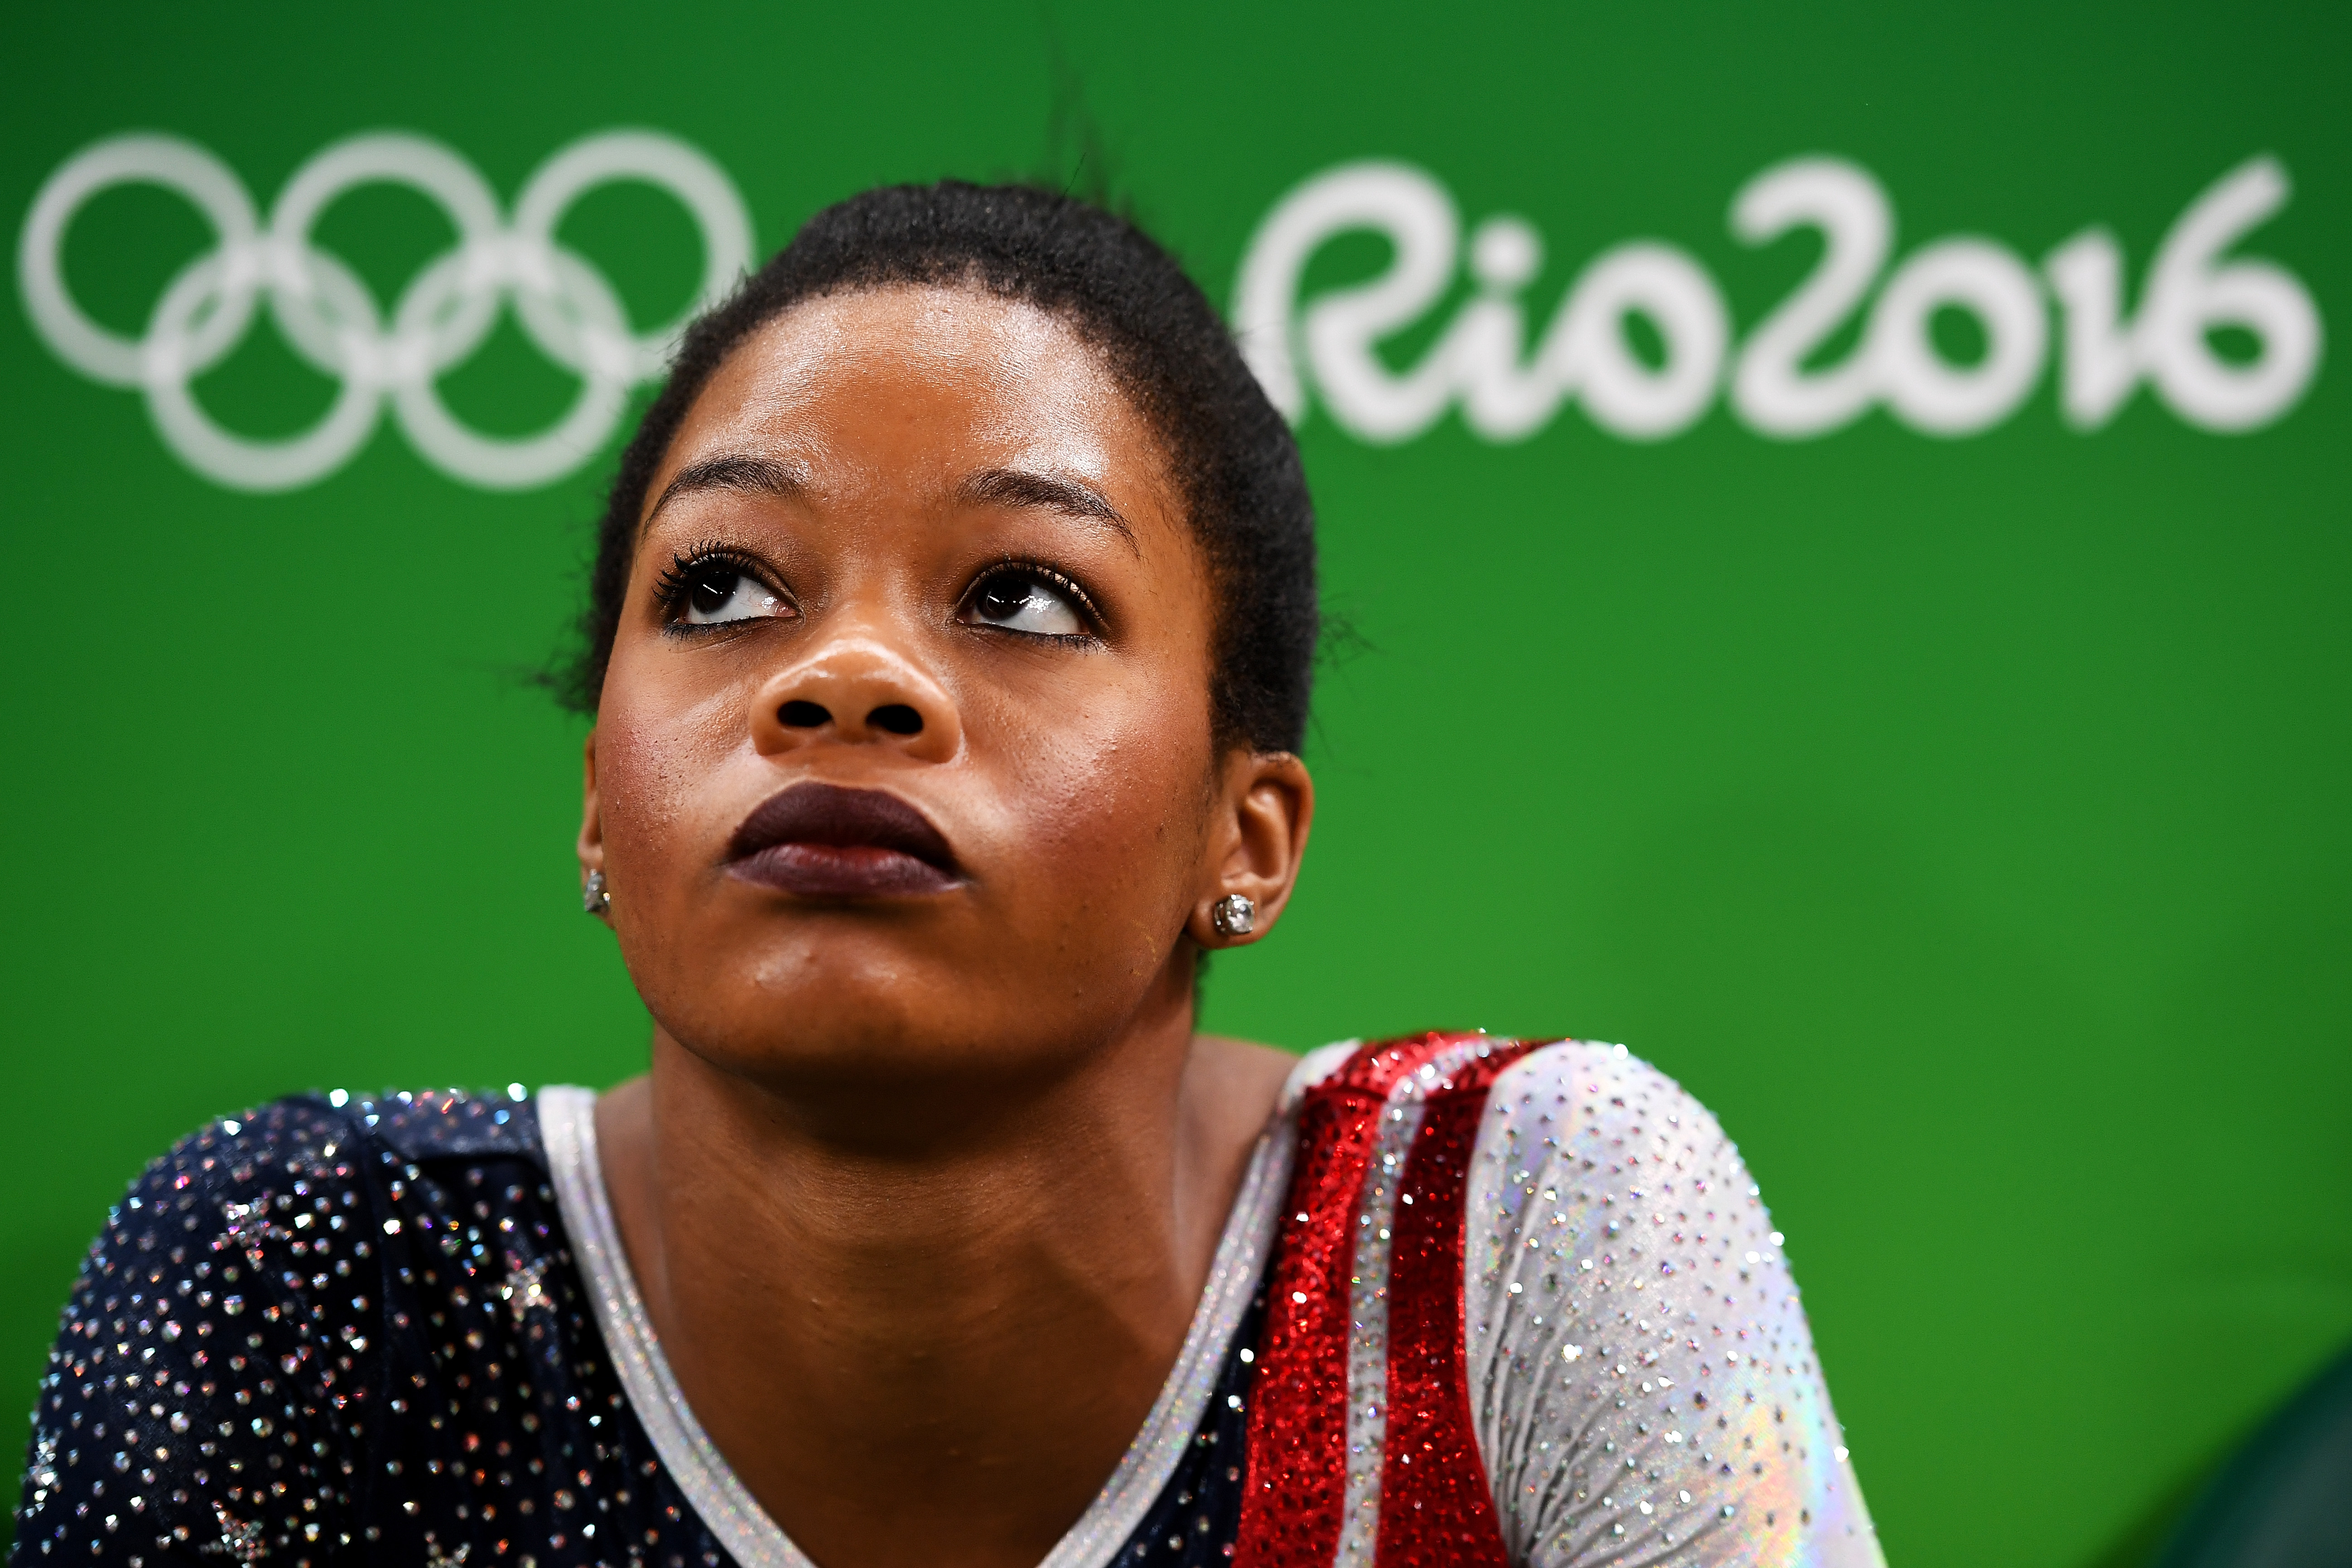 Gabby Douglas  looks on during the Artistic Gymnastics Women's Team Final on Day 4 of the Rio 2016 Olympic Games on Aug. 9, 2016